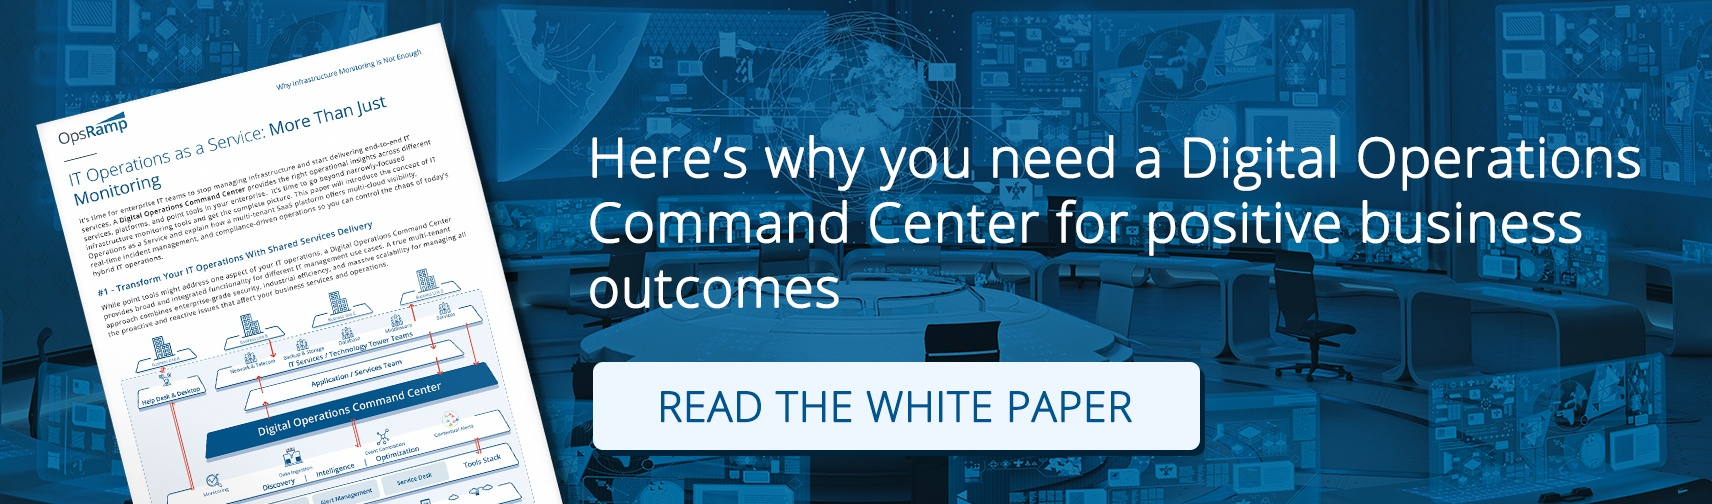 Here's Why You Need A Digital Operations Command Center